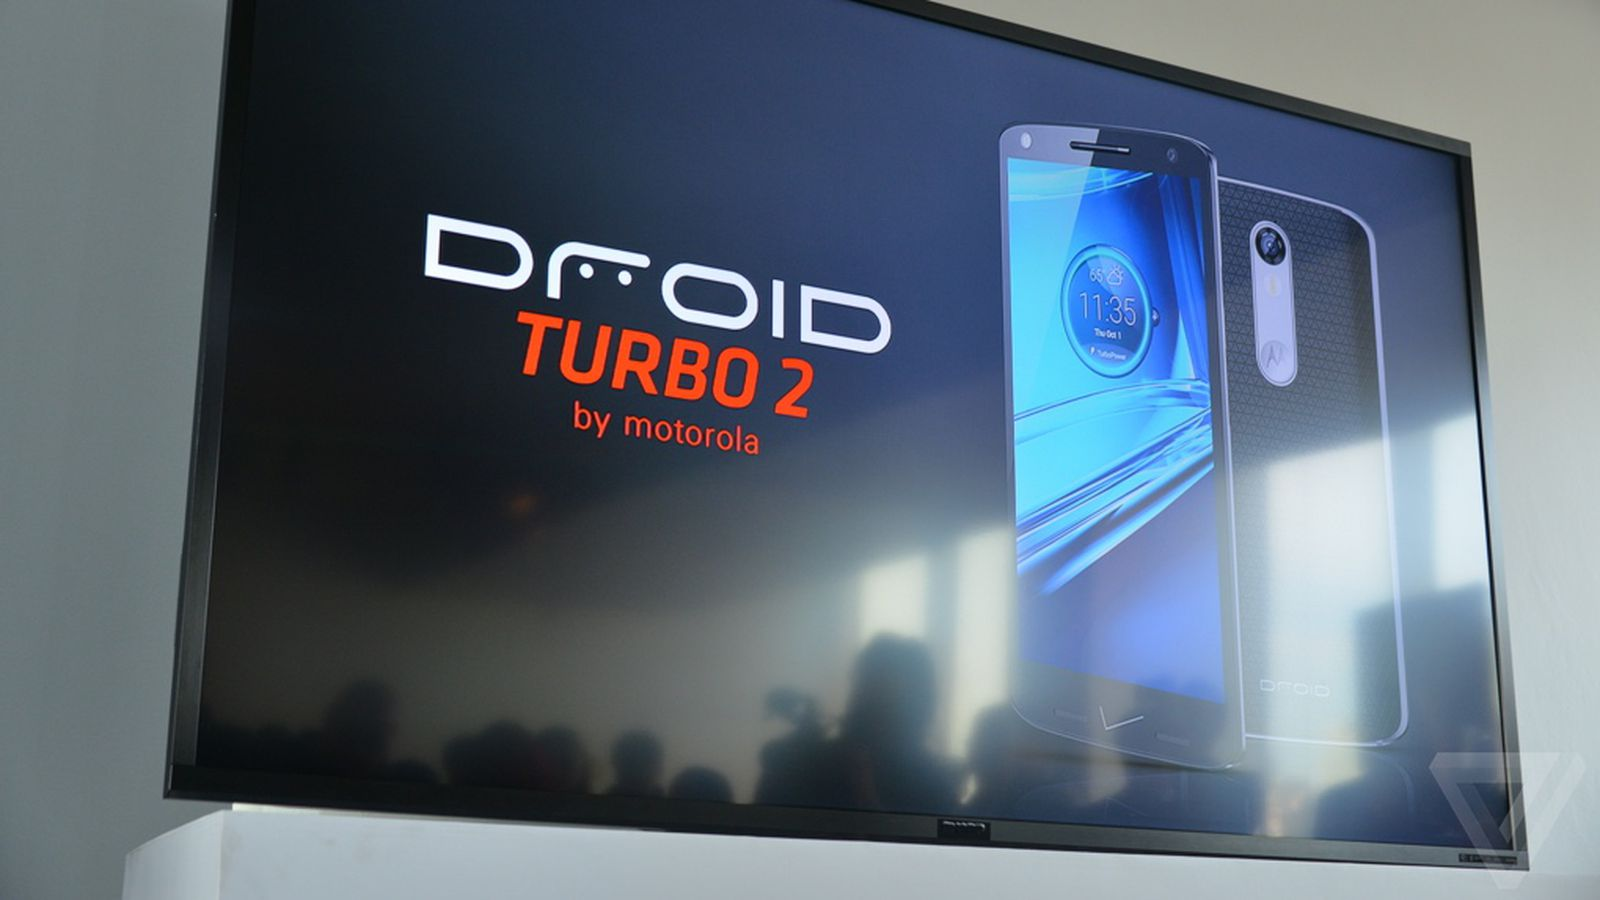 Droid Turbo 2 announced with shatterproof display, 48-hour battery life